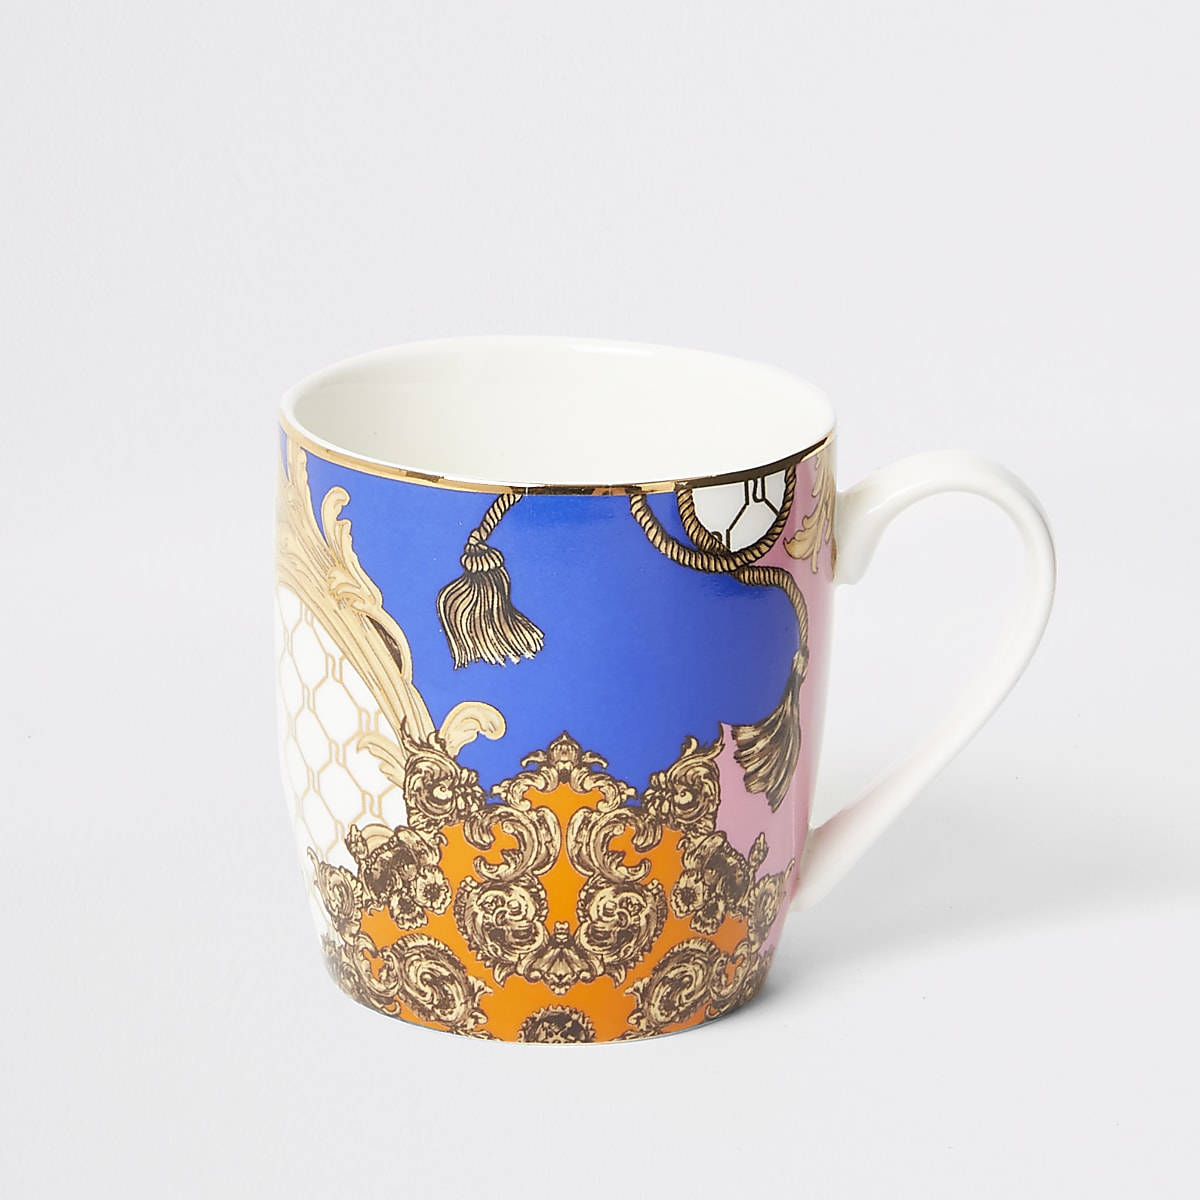 Orange RI baroque china mug